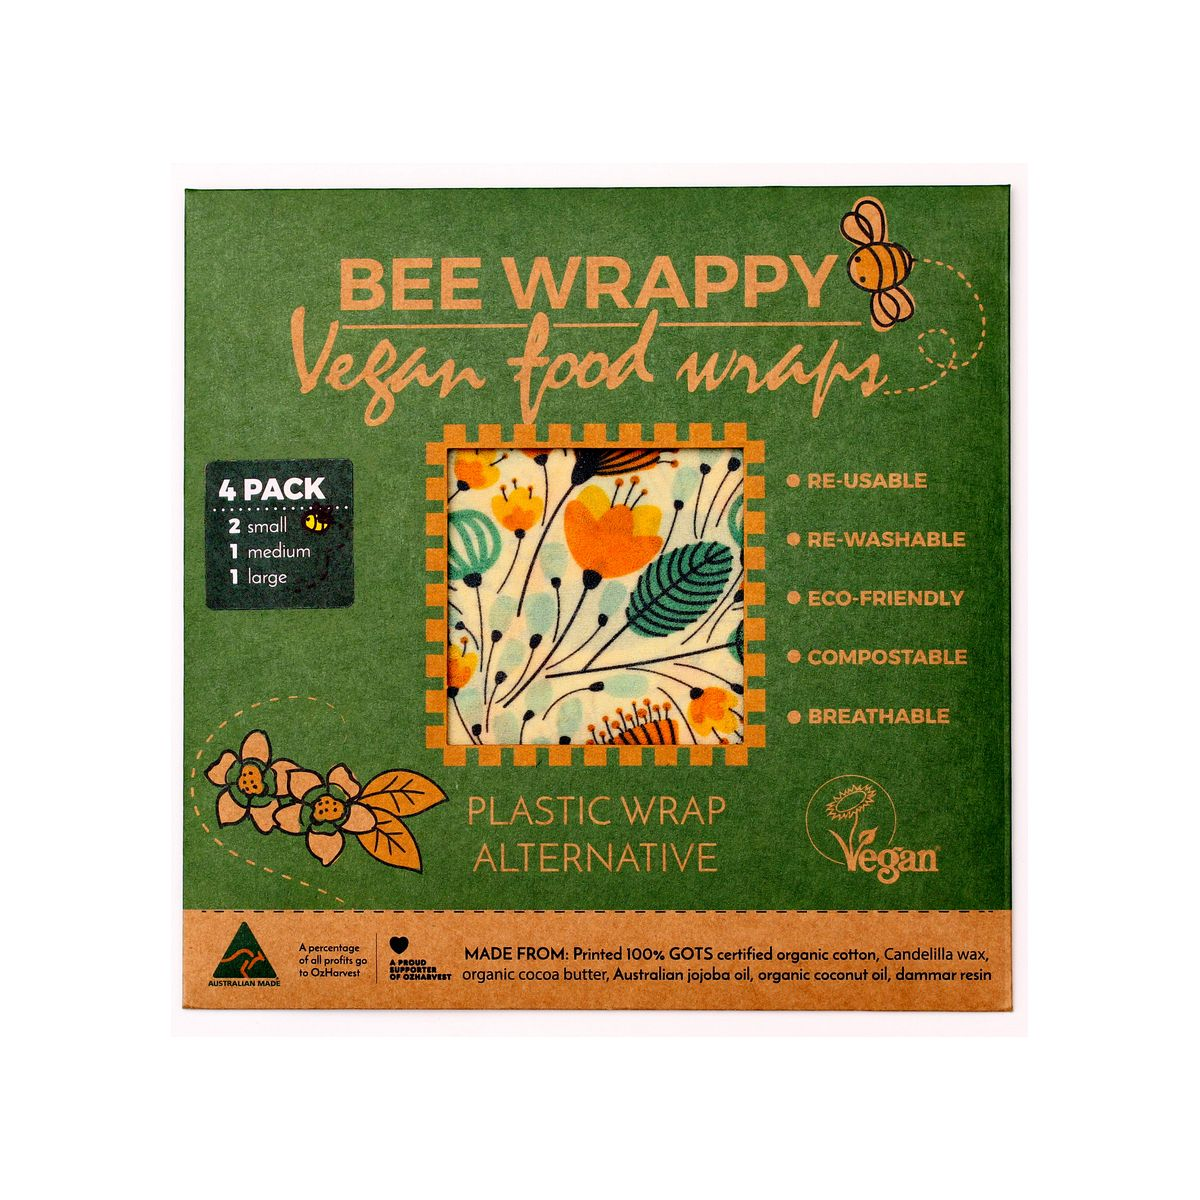 Bee Wrappy veganske voksark, 4 stk